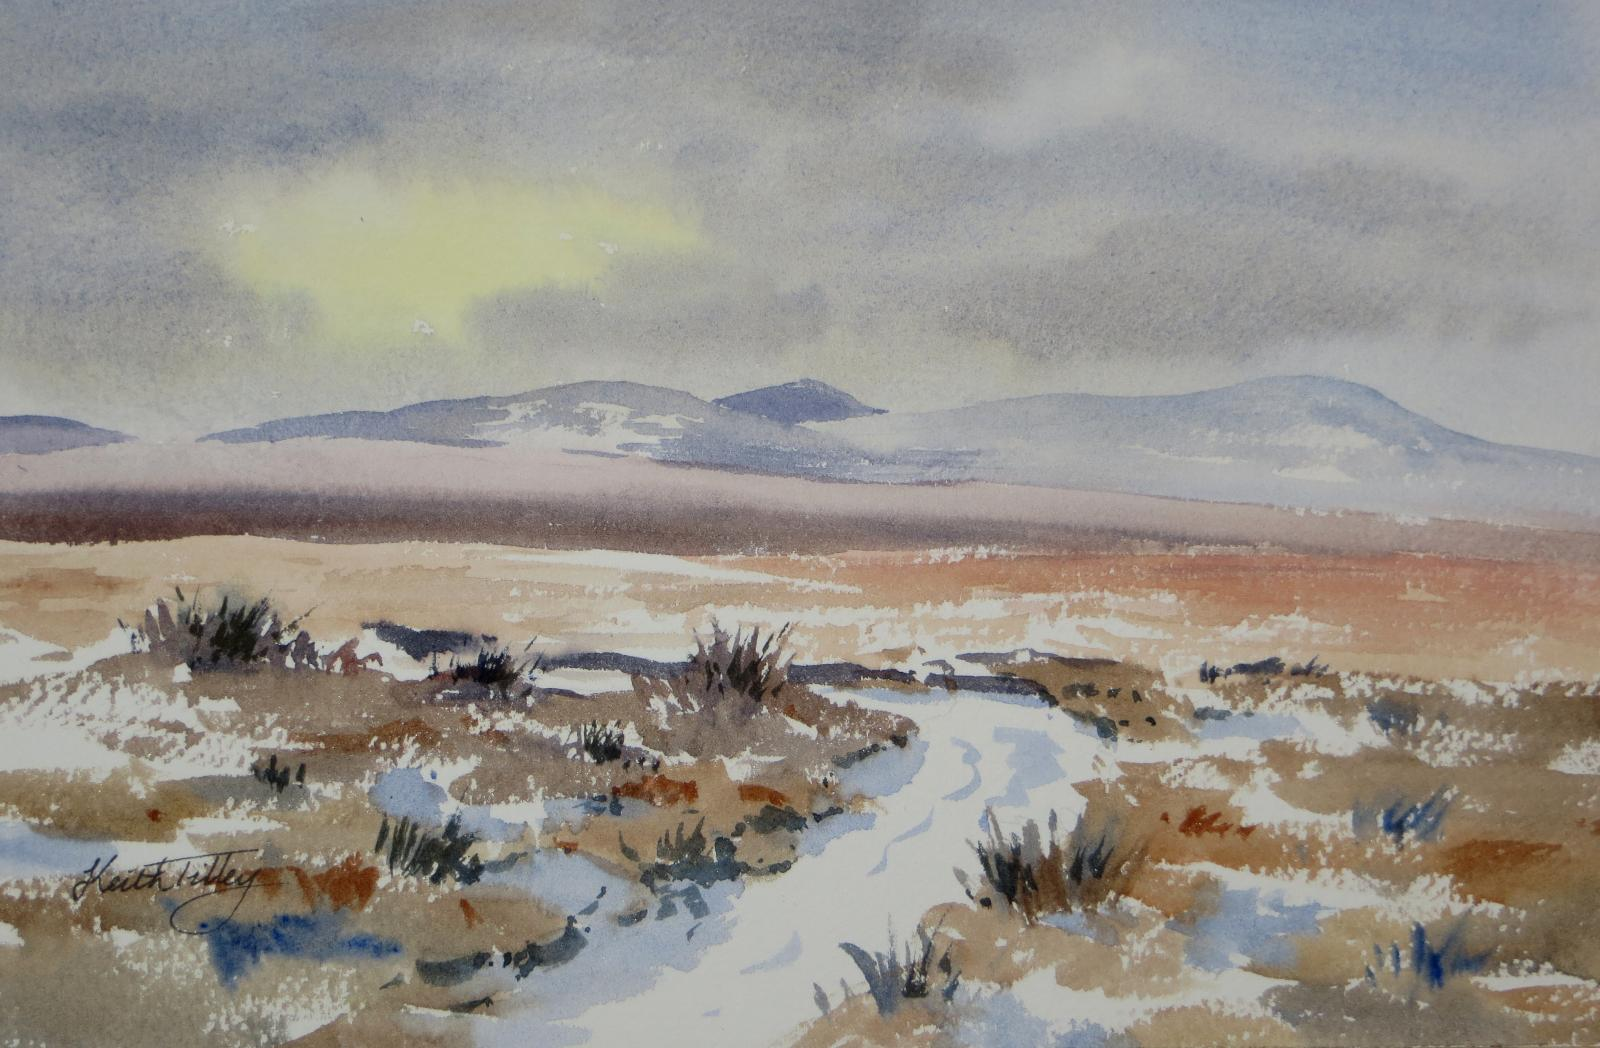 An original watercolour of a winter view in the Flow Country of Caithness, Scotland. One of the largest areas of blanket bog in Europe, and an important area for nature conservation. Part of the Forsinard Flows Nature Reserve